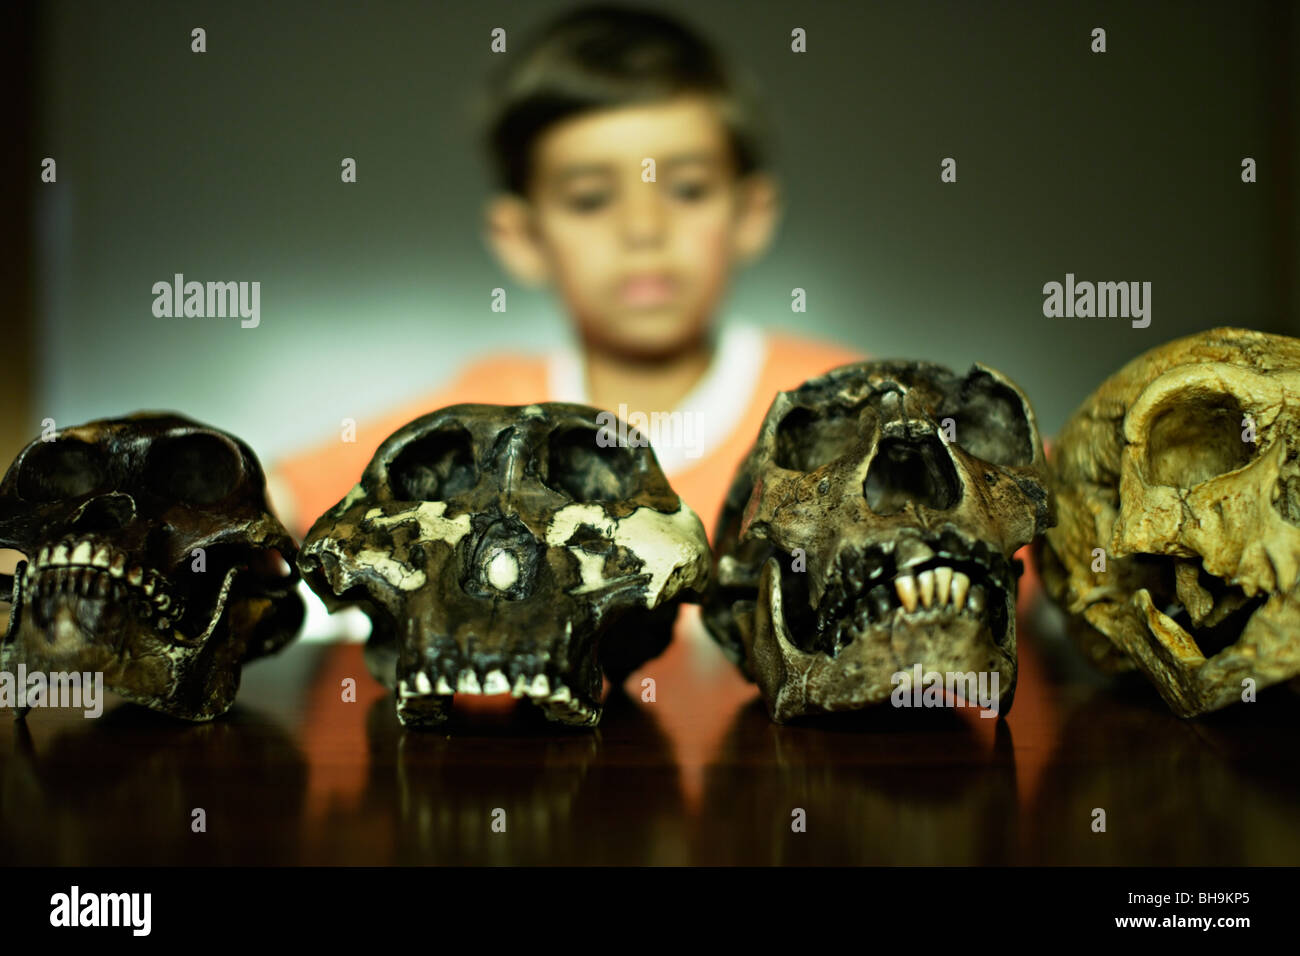 Boy looks at reproduction skulls of extinct human ancestors - Stock Image